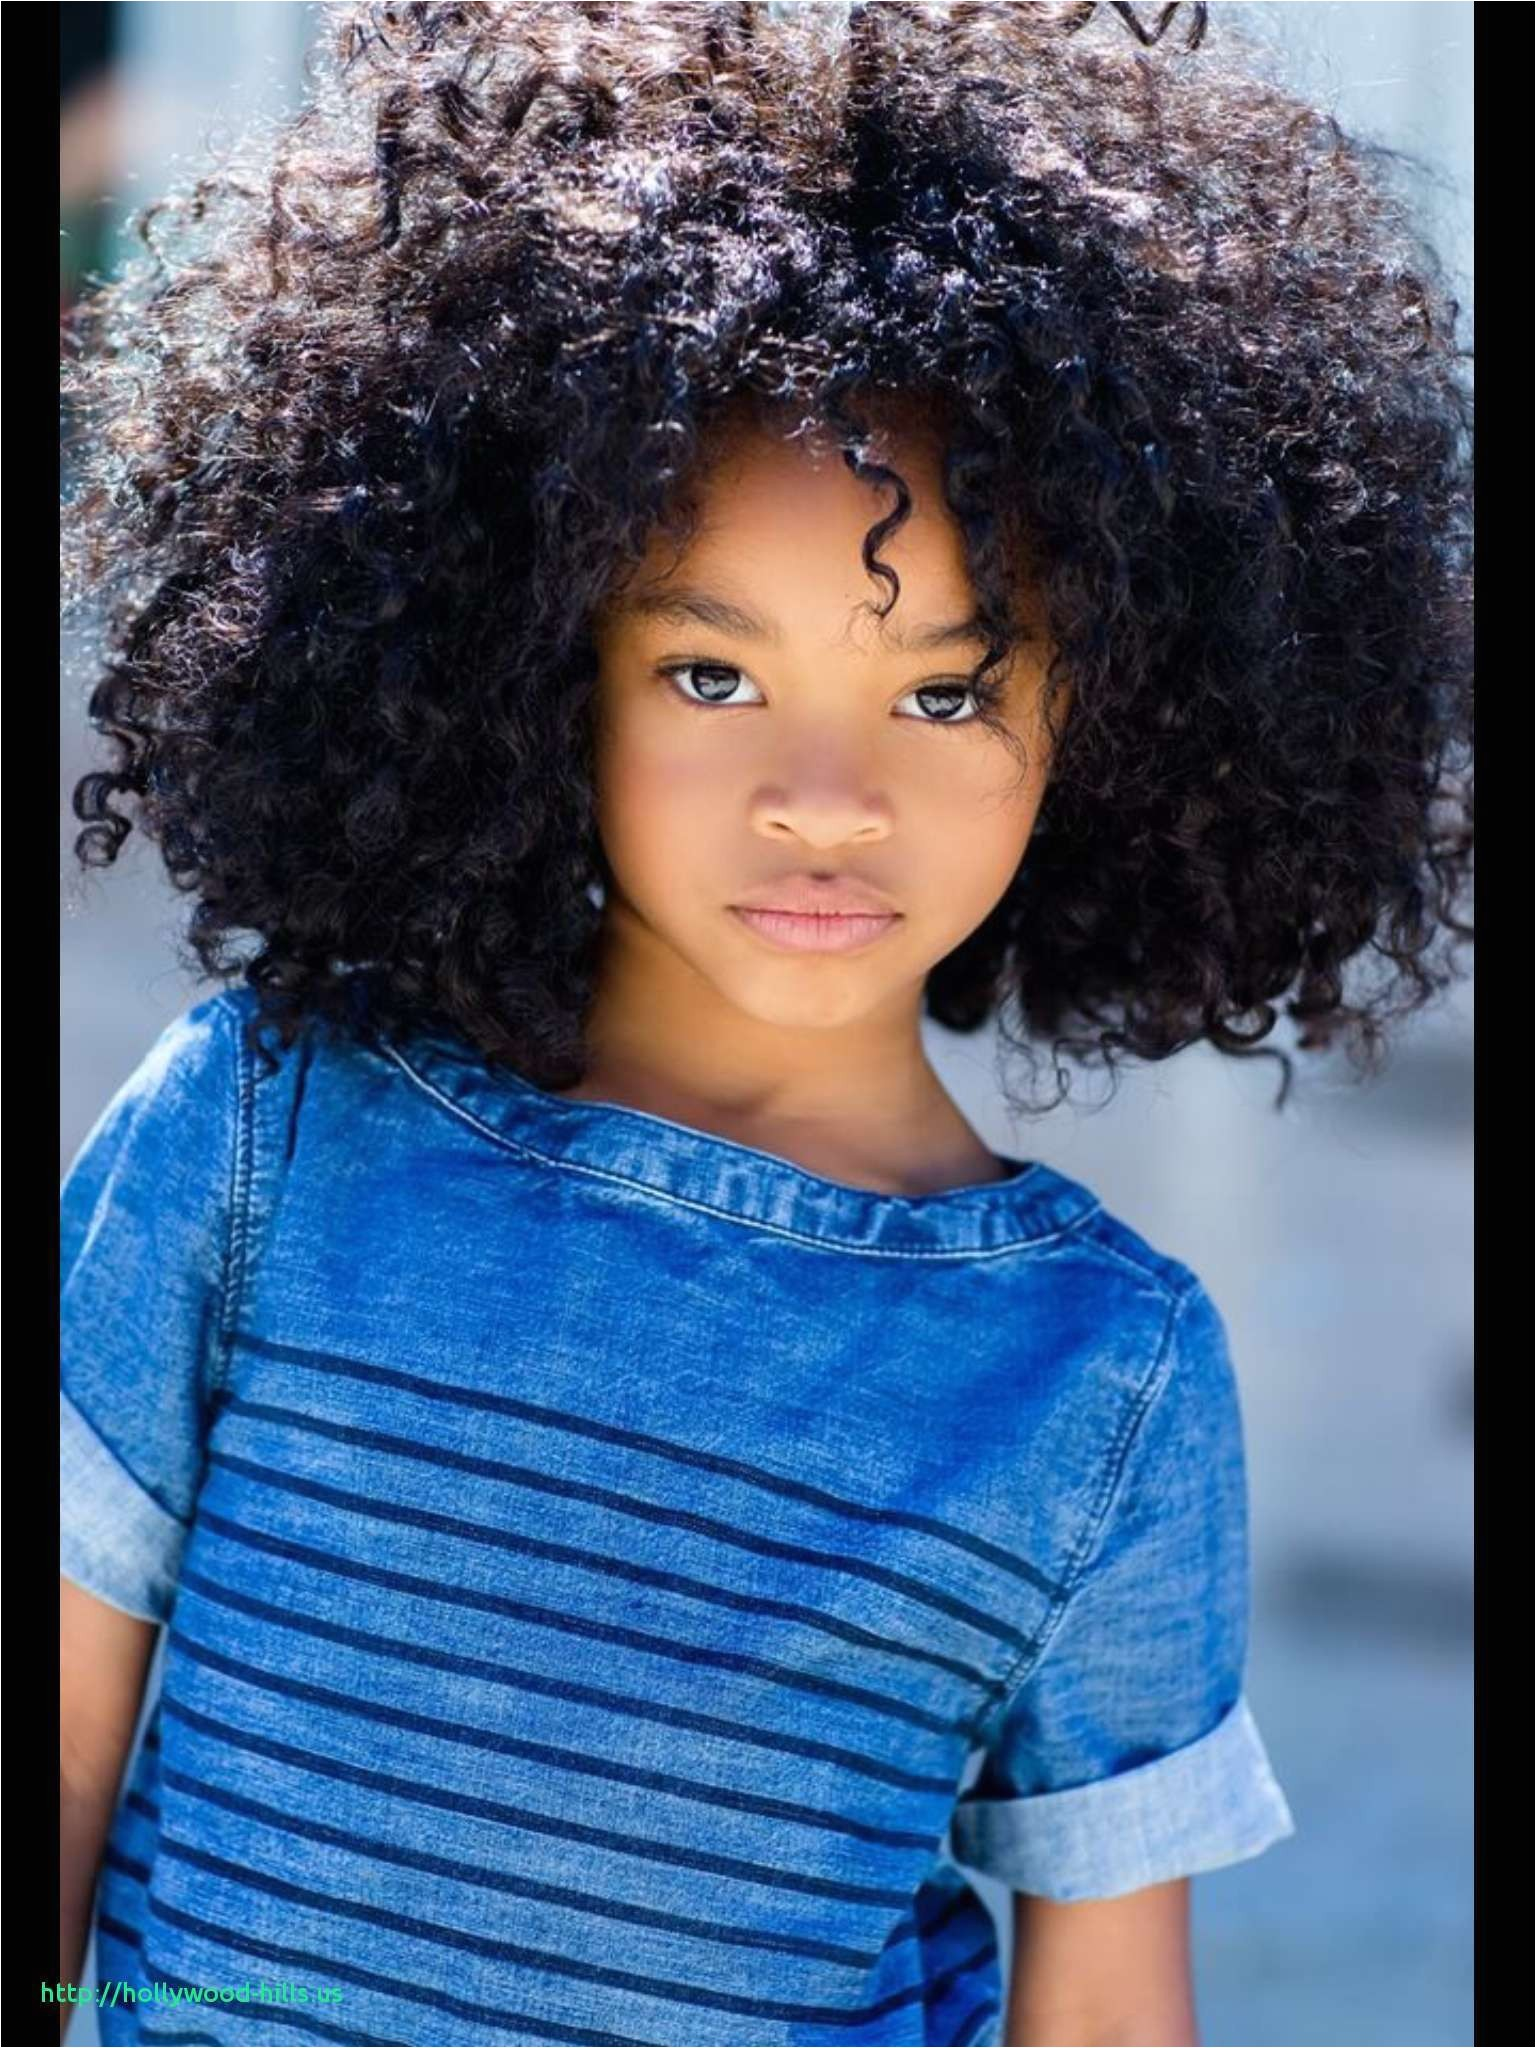 Cute Hairstyles for Mixed Girl Hair New Hairstyles for Curly Hair Baby Girl Cute Hairstyles